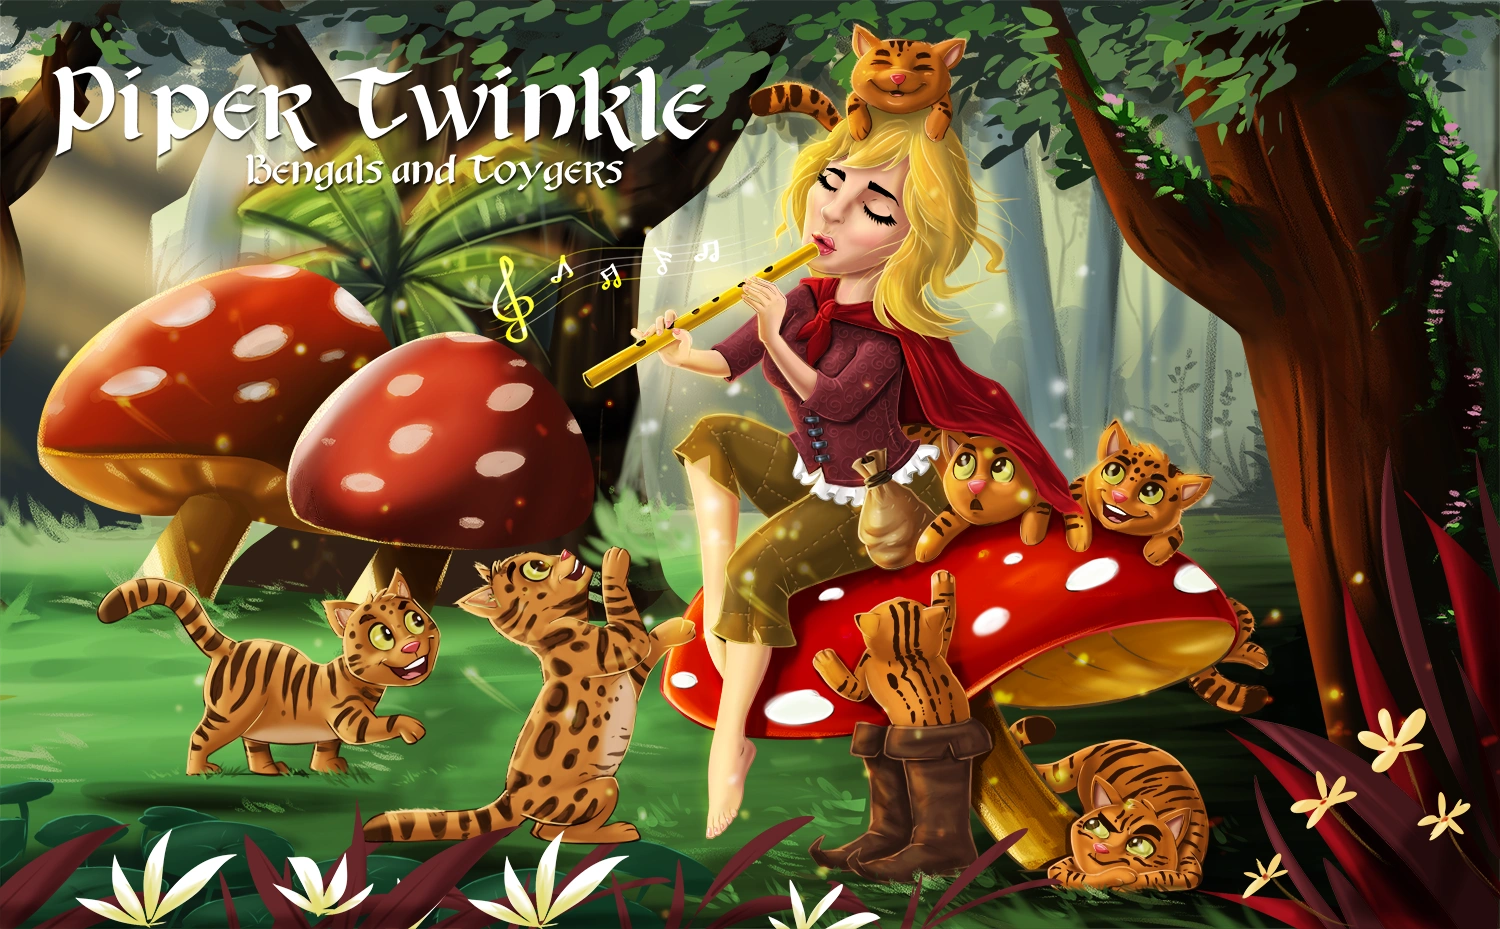 Pipertwinkle Bengals and Toygers, Registered with the New Zealand Cat Fancy and TICA.